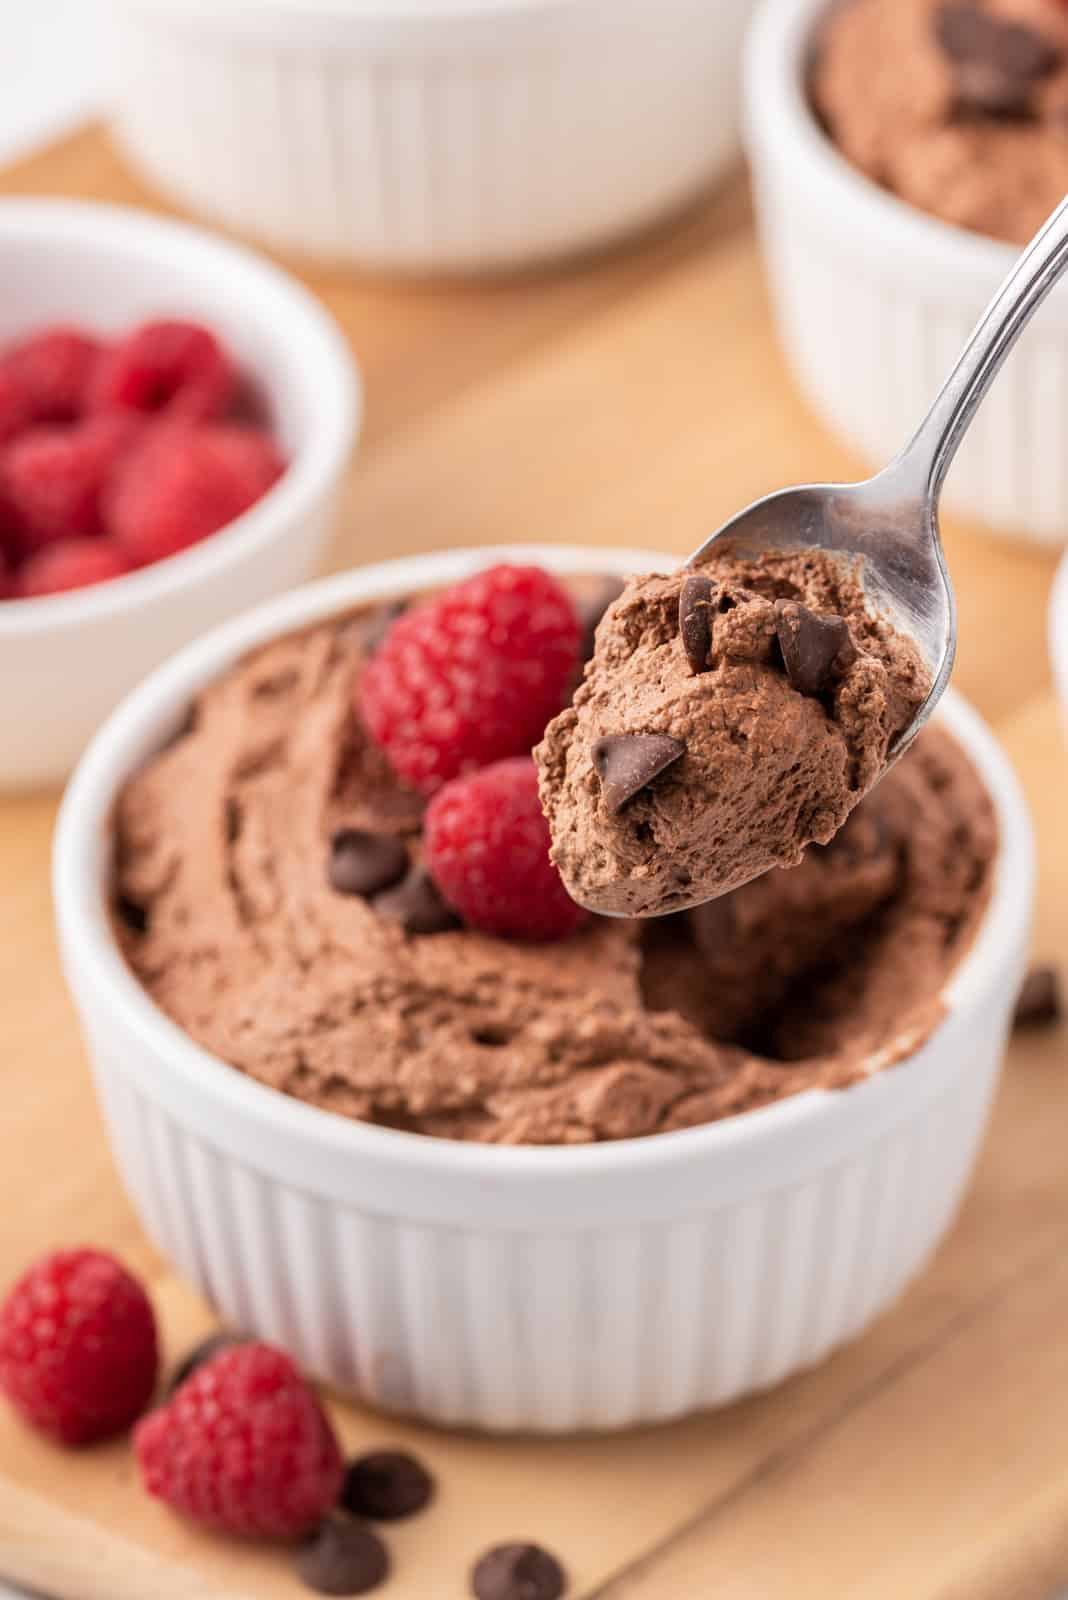 Spoonfull held up of Easy Chocolate Mousse